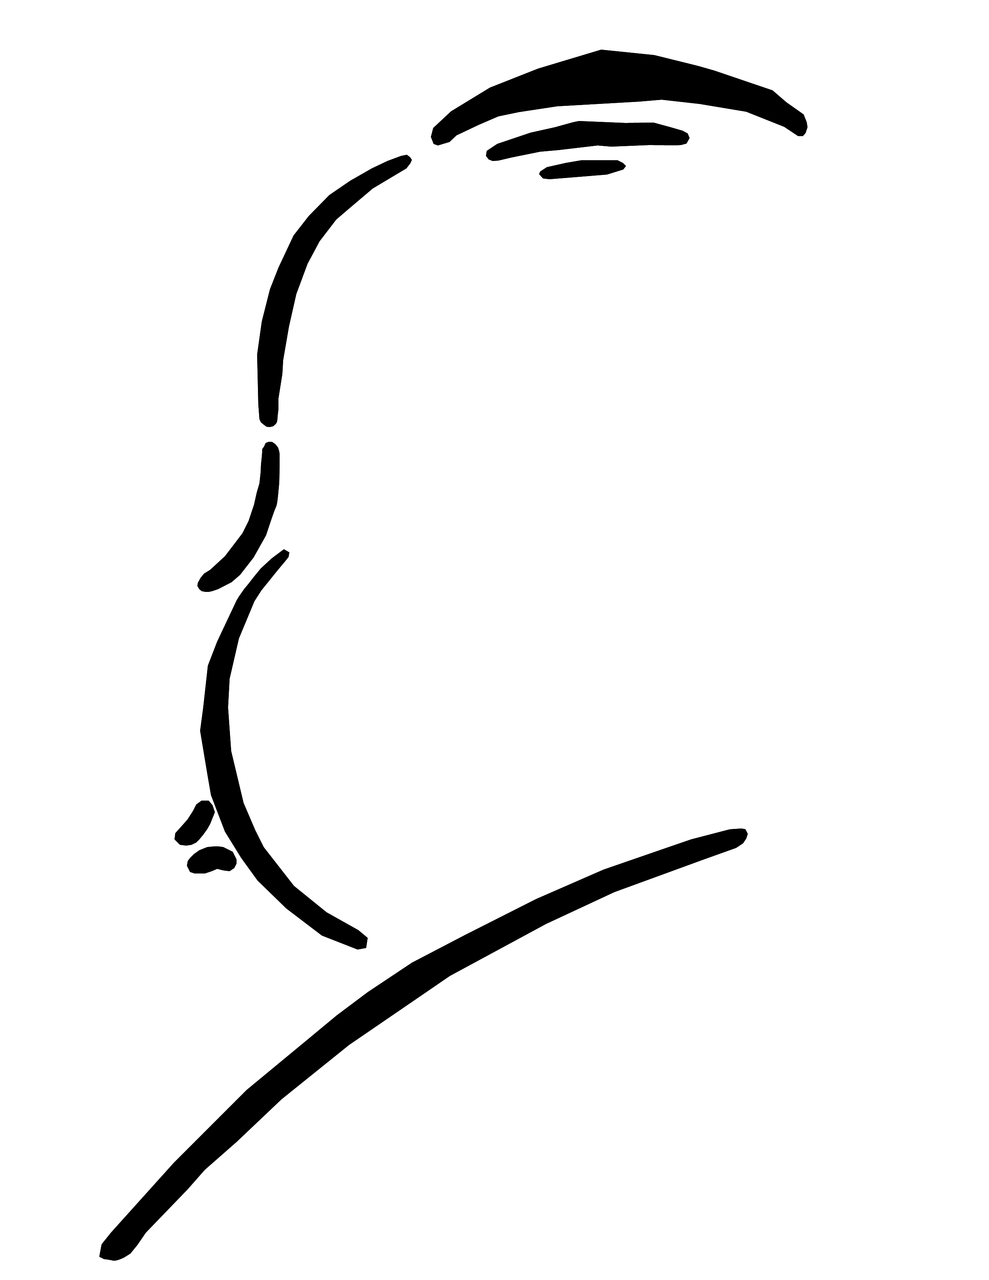 alfred hitchcock clipart